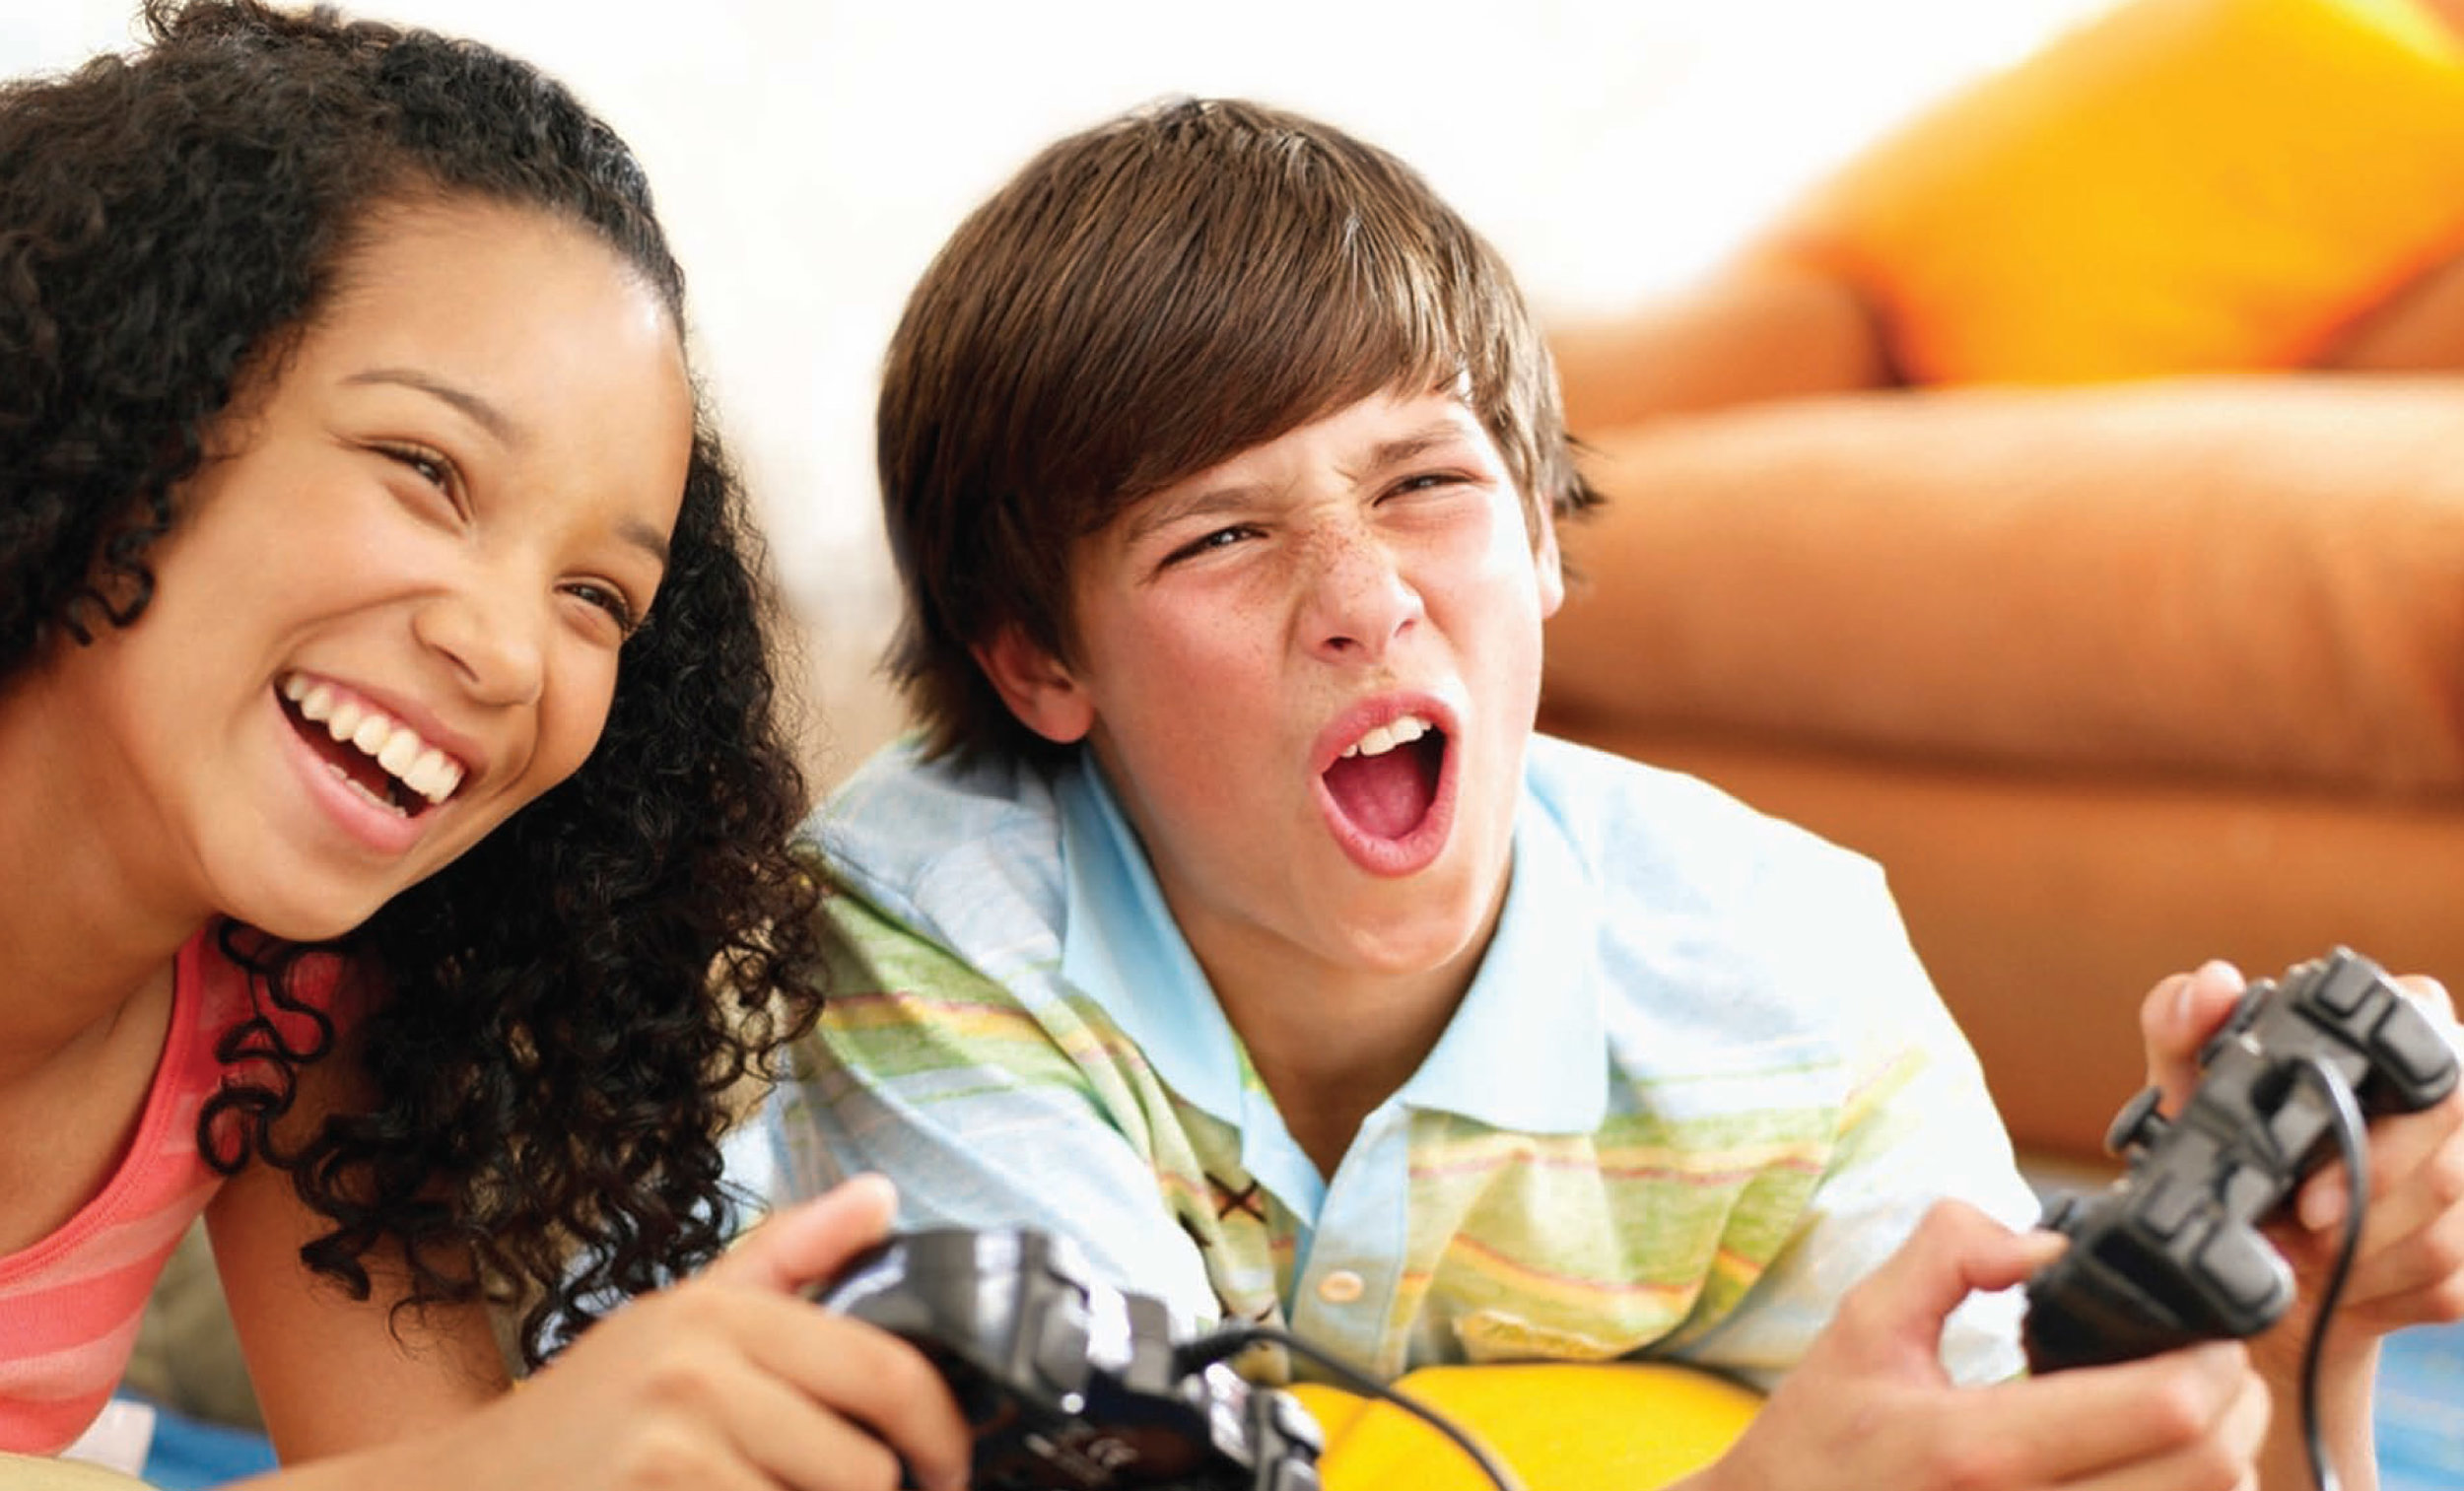 violence in video games and aggressive Playing violent video games is no more likely to be damaging to young children's behaviour than those considered harmless, an oxford university study suggests research involving british primary.